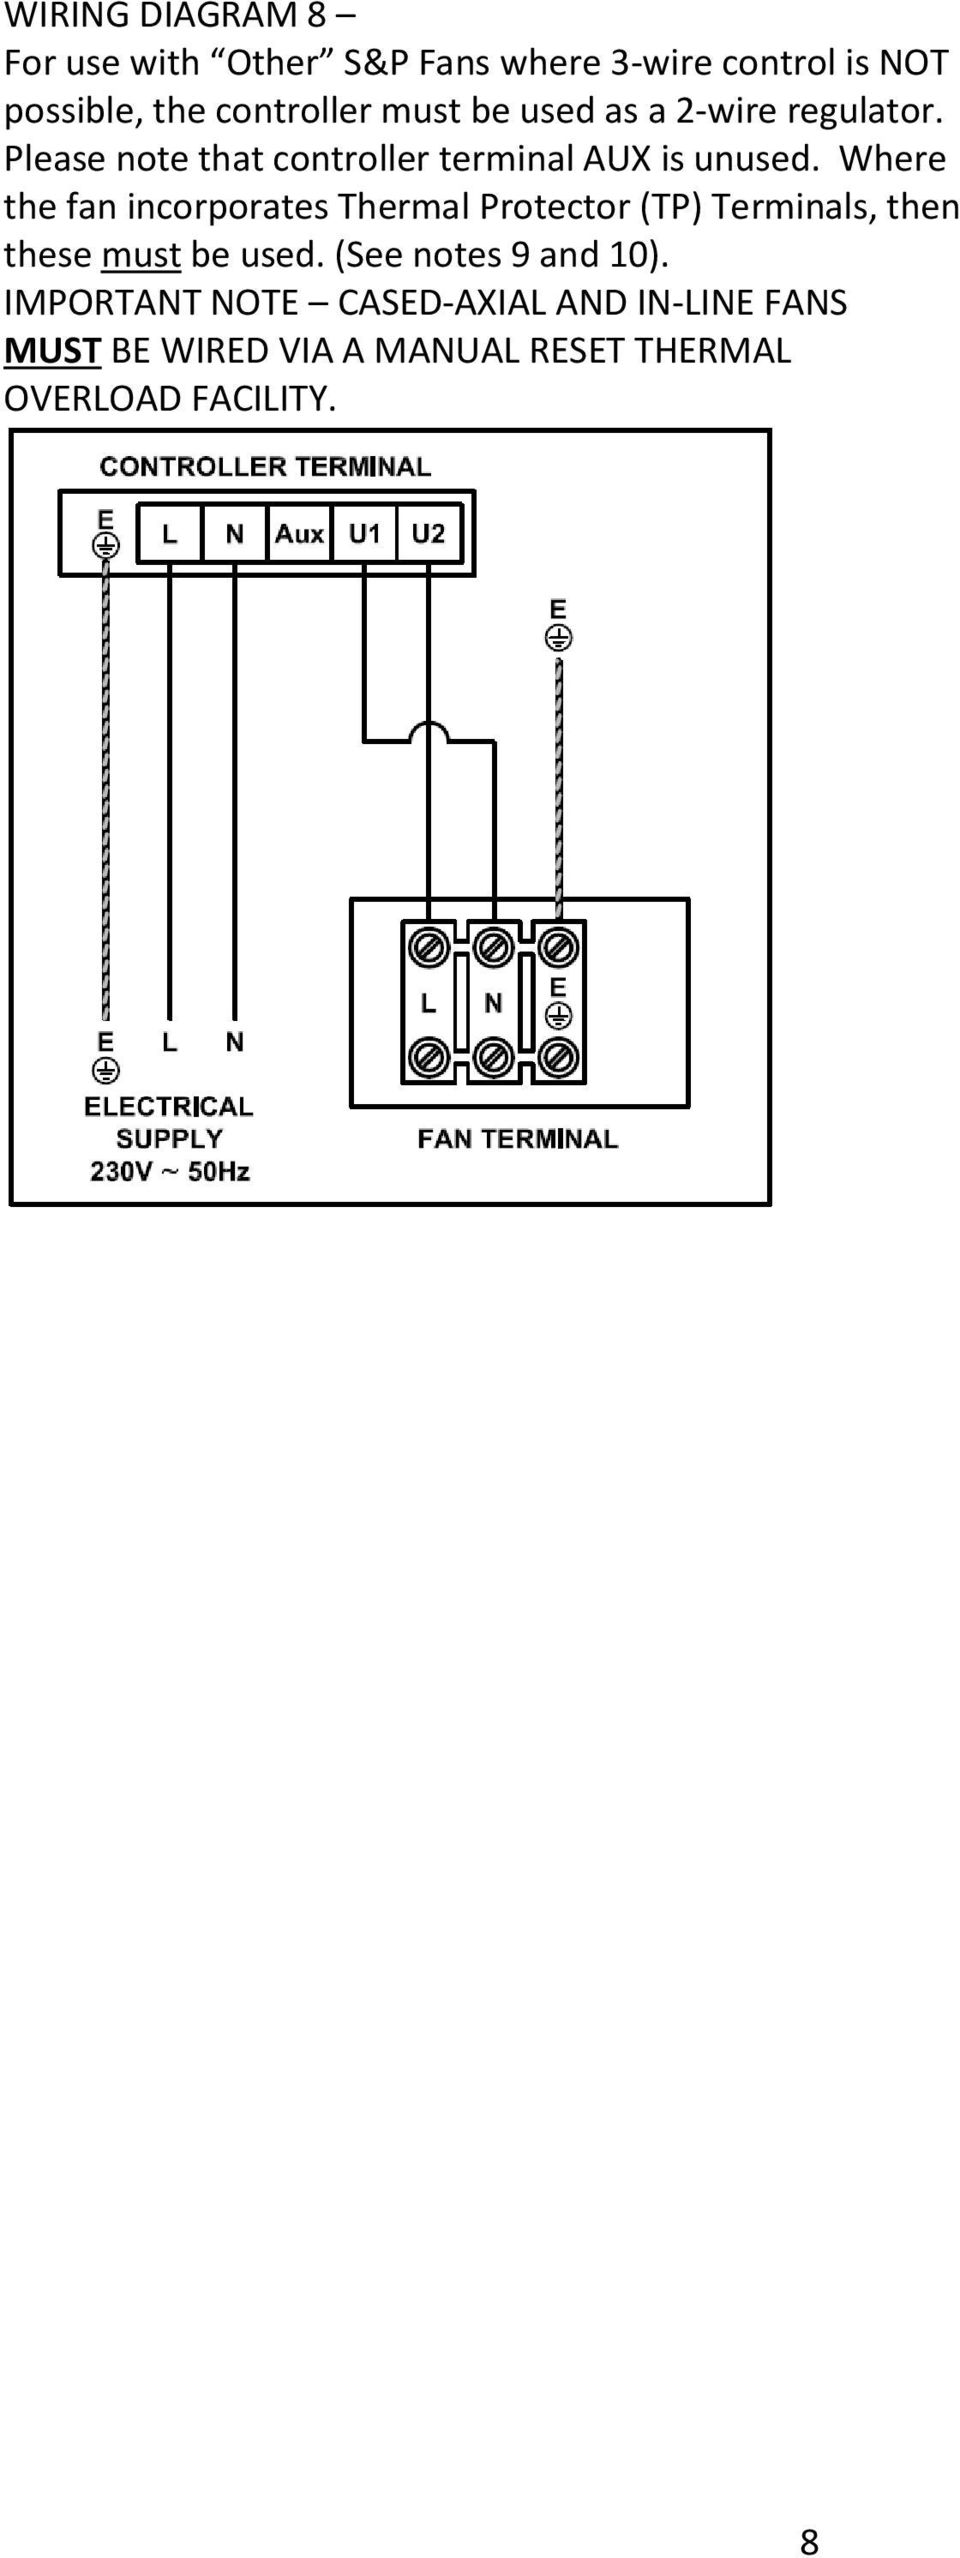 Reb 1 3 5 6 8 10 12 16 Pdf Wiring Diagram In Addition Wire Condenser Fan Motor Diagrams Where The Incorporates Thermal Protector Tp Terminals Then These Must Be Used